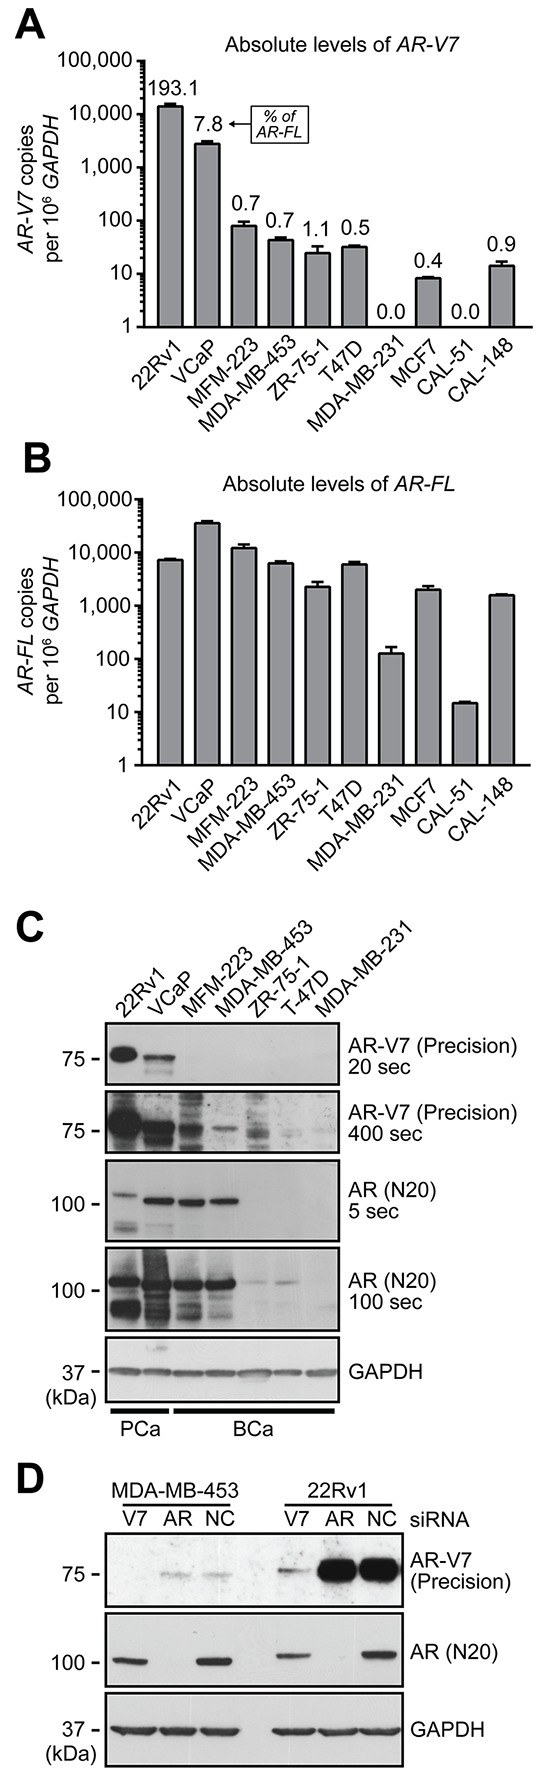 Expression of AR-V7 in breast cancer cell line models A–B. qRT-PCR was used to quantify AR-V7 (A) and AR-FL (B) in a panel of 8 breast cancer cell lines and 2 prostate cancer cell line controls (22Rv1 and VCaP). AR-V7 levels as a percentage of AR-FL transcript are shown above the columns in panel A. Values are the mean (± SEM) of triplicate samples. C. Protein lysates were collected from the indicated cell lines used above and subjected to Western blot analysis using AR-V7 (Precision Biosciences), AR (N20) and GAPDH (loading control) antibodies. Short and long exposures are shown. Note that AR-FL from 22Rv1 cells migrates more slowly because it contains two copies of the second zinc finger domain as a result of a genomic duplication. D. MDA-MB-453 and 22Rv1 cells were transfected with a non-specific control siRNA (NC) or siRNAs specific for AR-FL or AR-V7. After 72 h, protein lysates were analyzed by Western blotting as in (C).